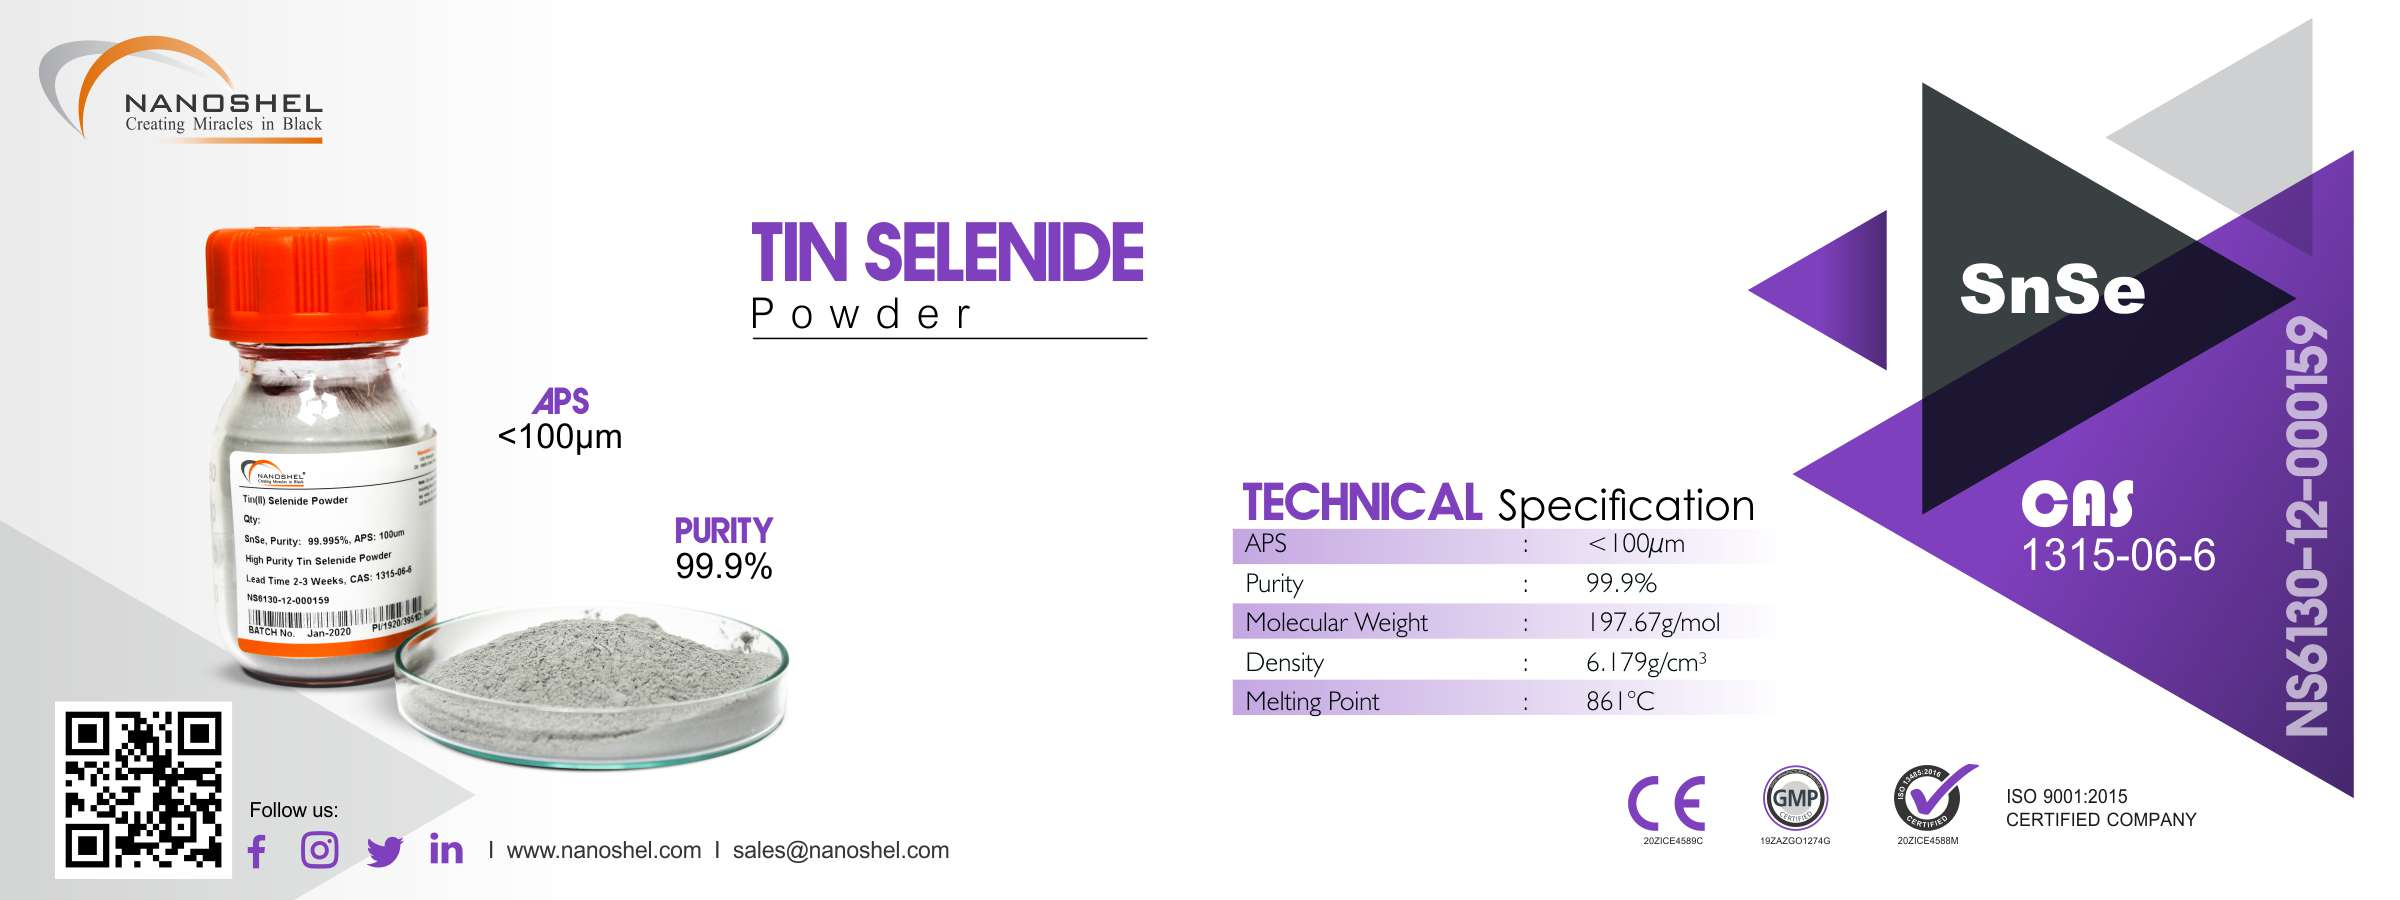 Tin Selenide Powder